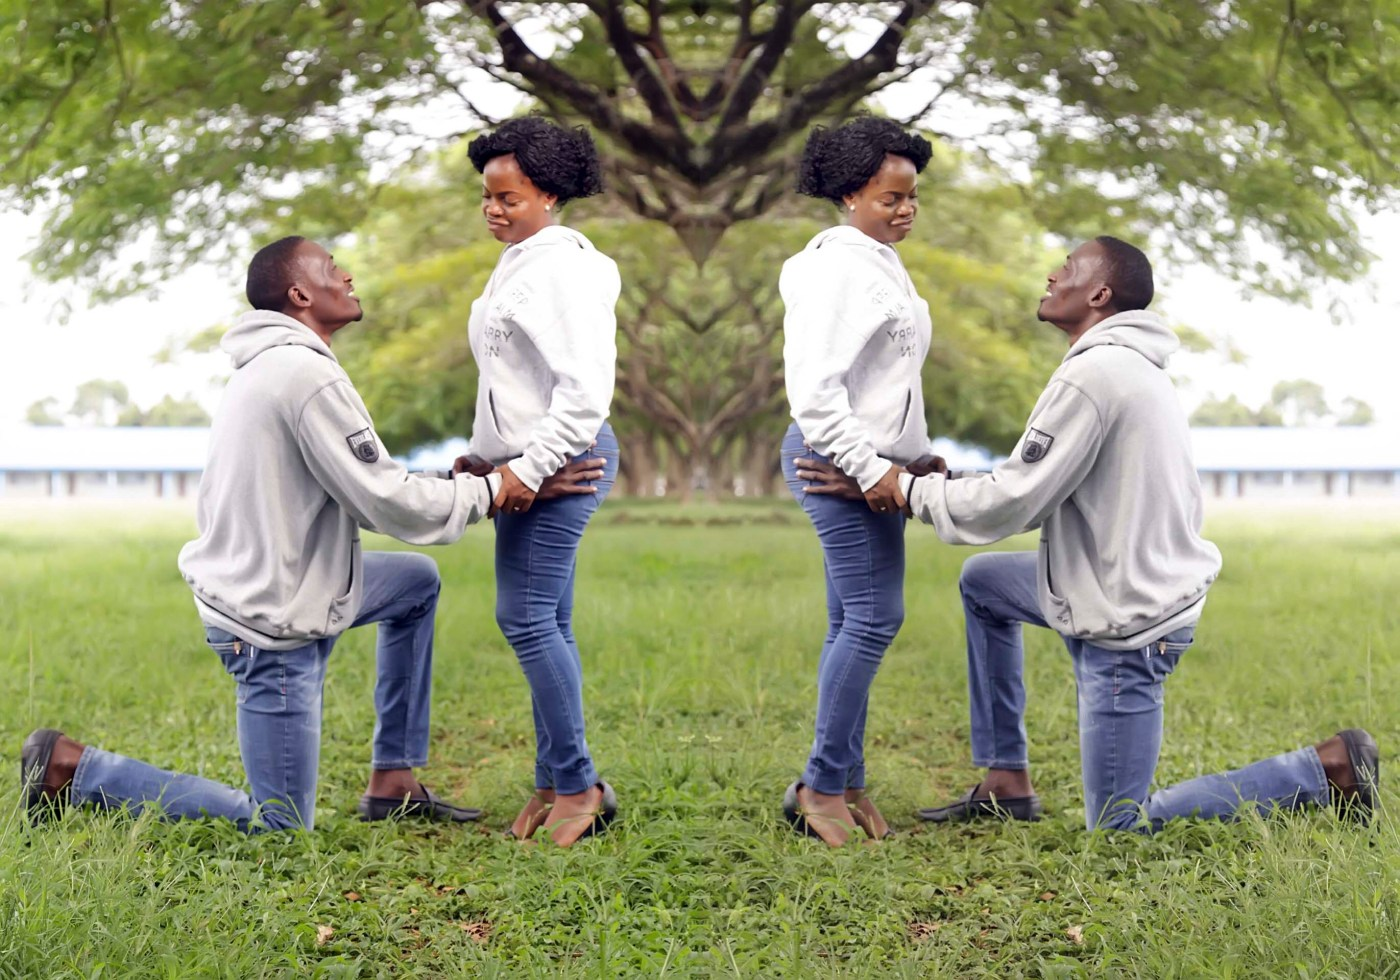 kneeling to propose marriage to a lady